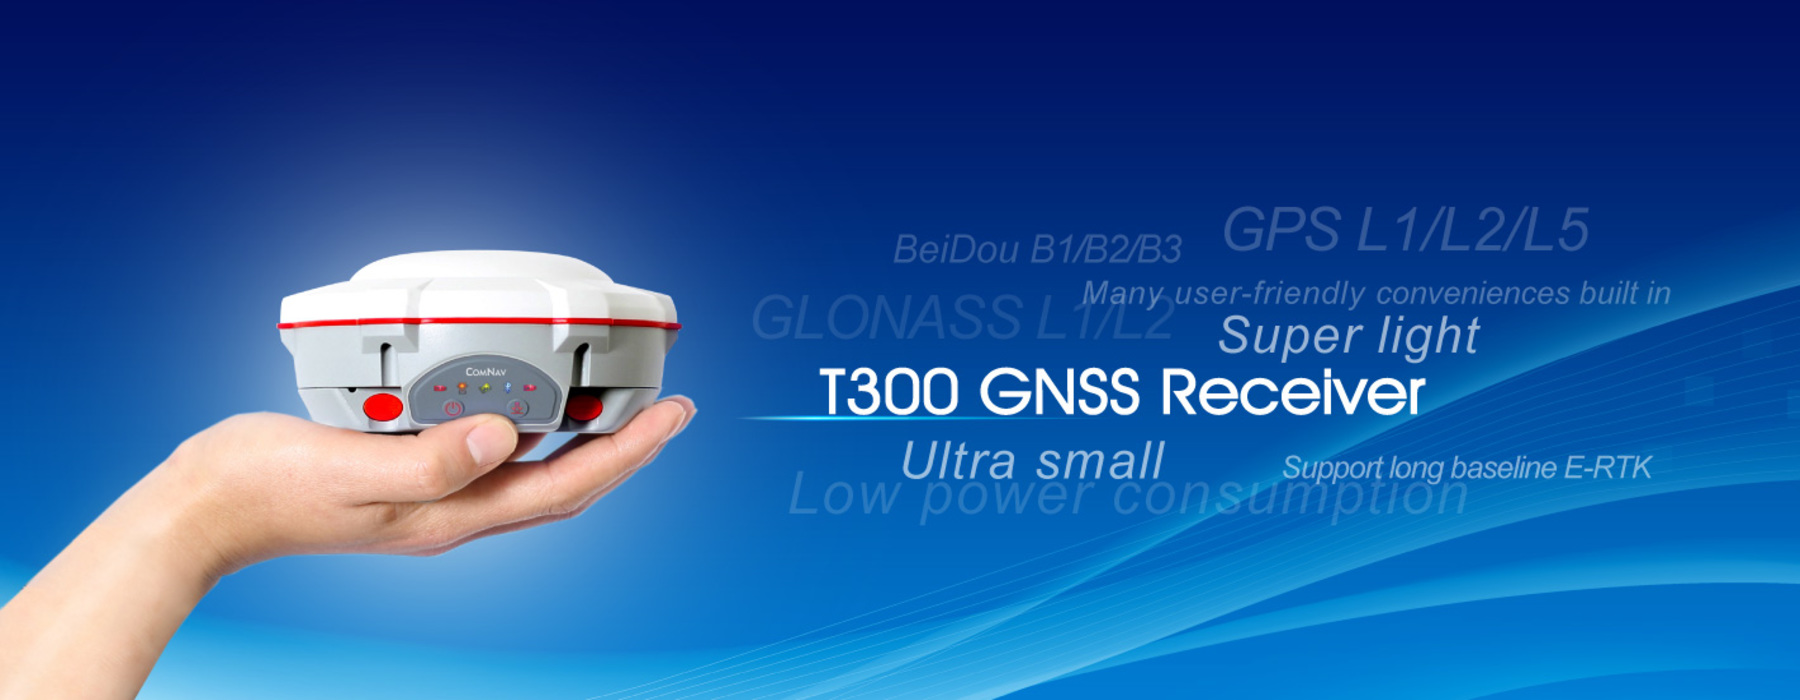 Special offer for COMNAV's  GNSS T300